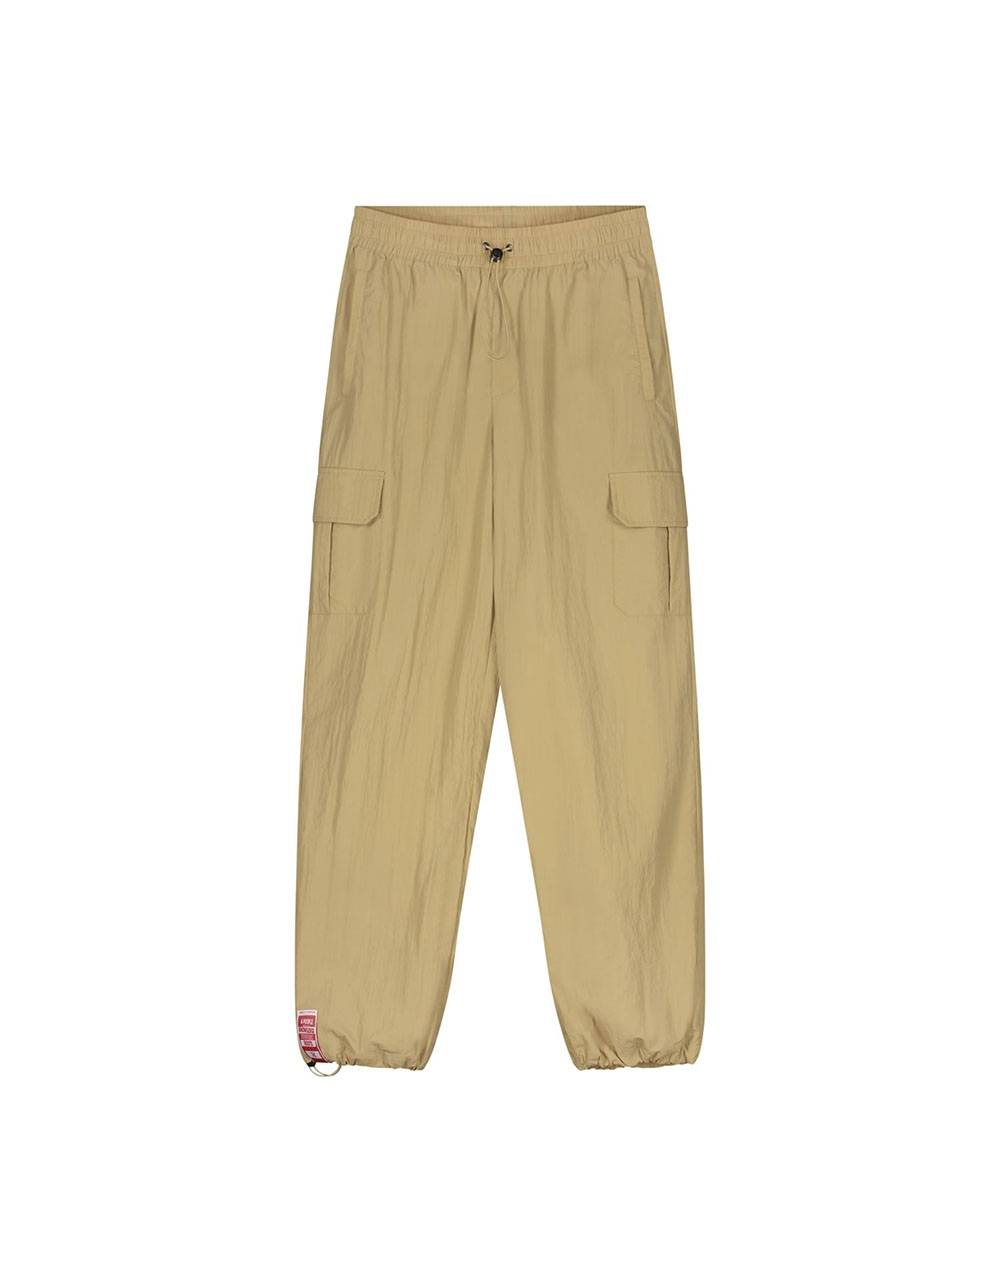 Daily Paper Kohargo pants - beige DAILY PAPER Pant 146,00€